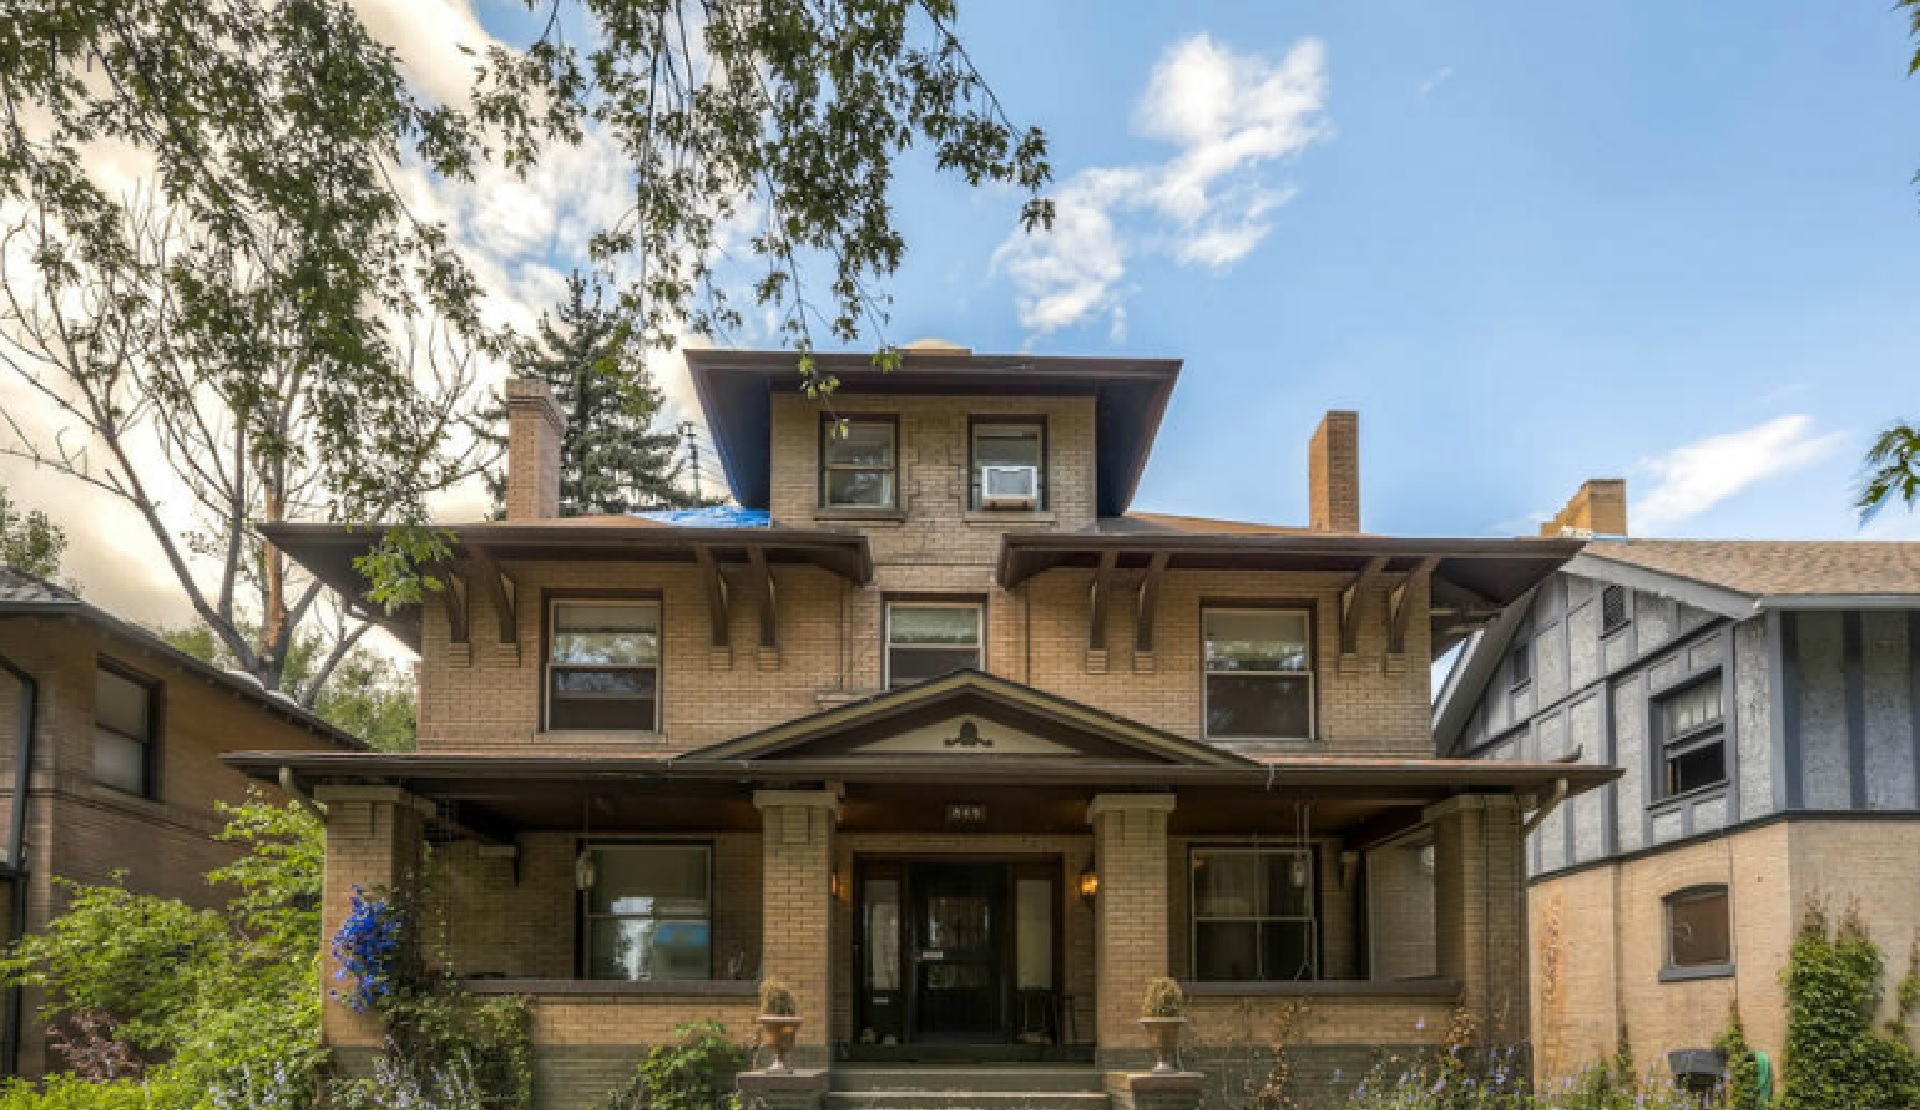 849 Humboldt St, Denver, CO 80218